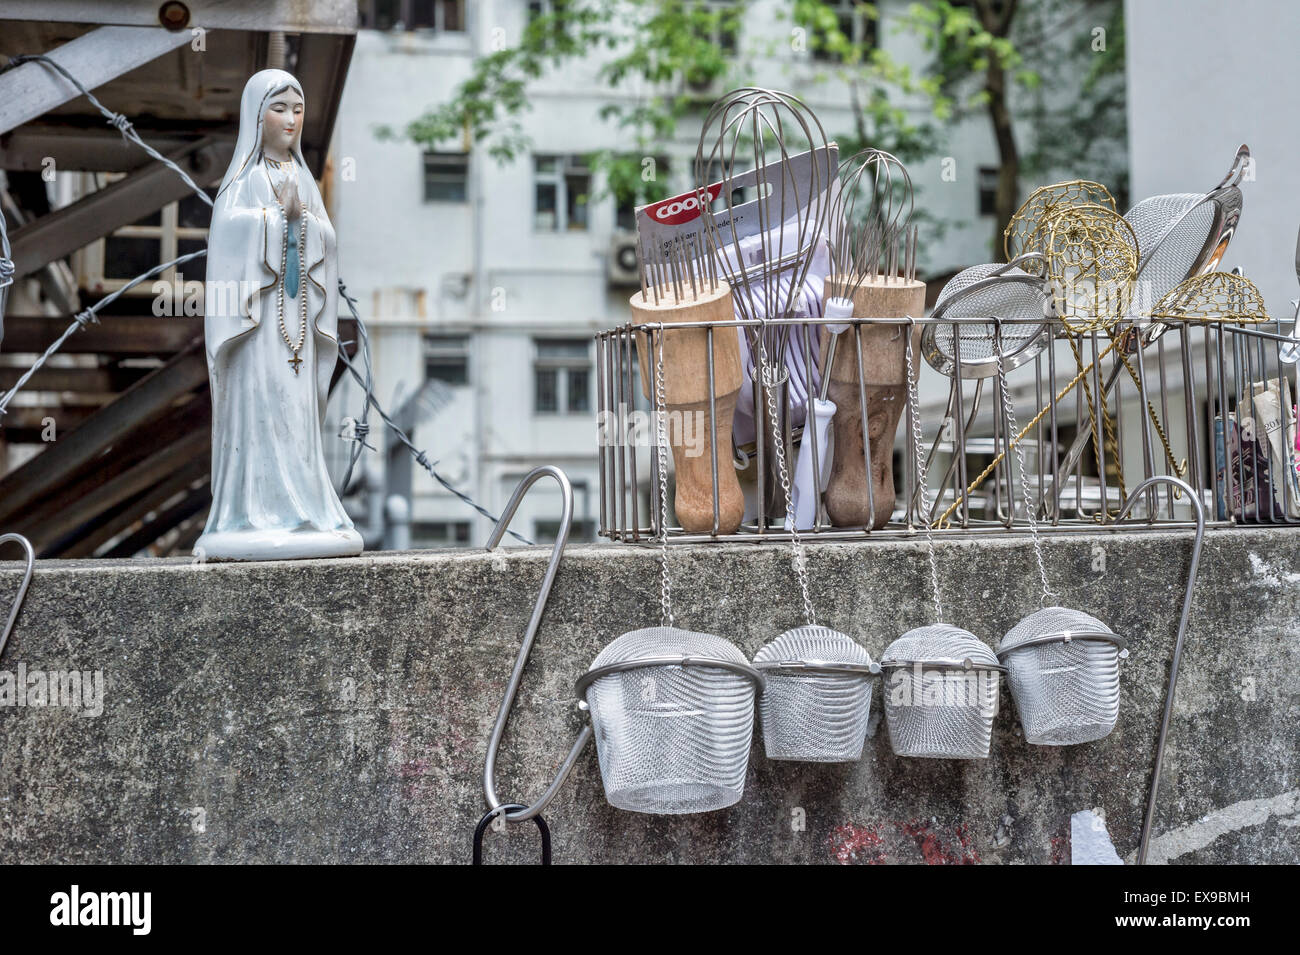 Virgin mary statuette next to kitchen utensils, in a Hong Kong street - Stock Image